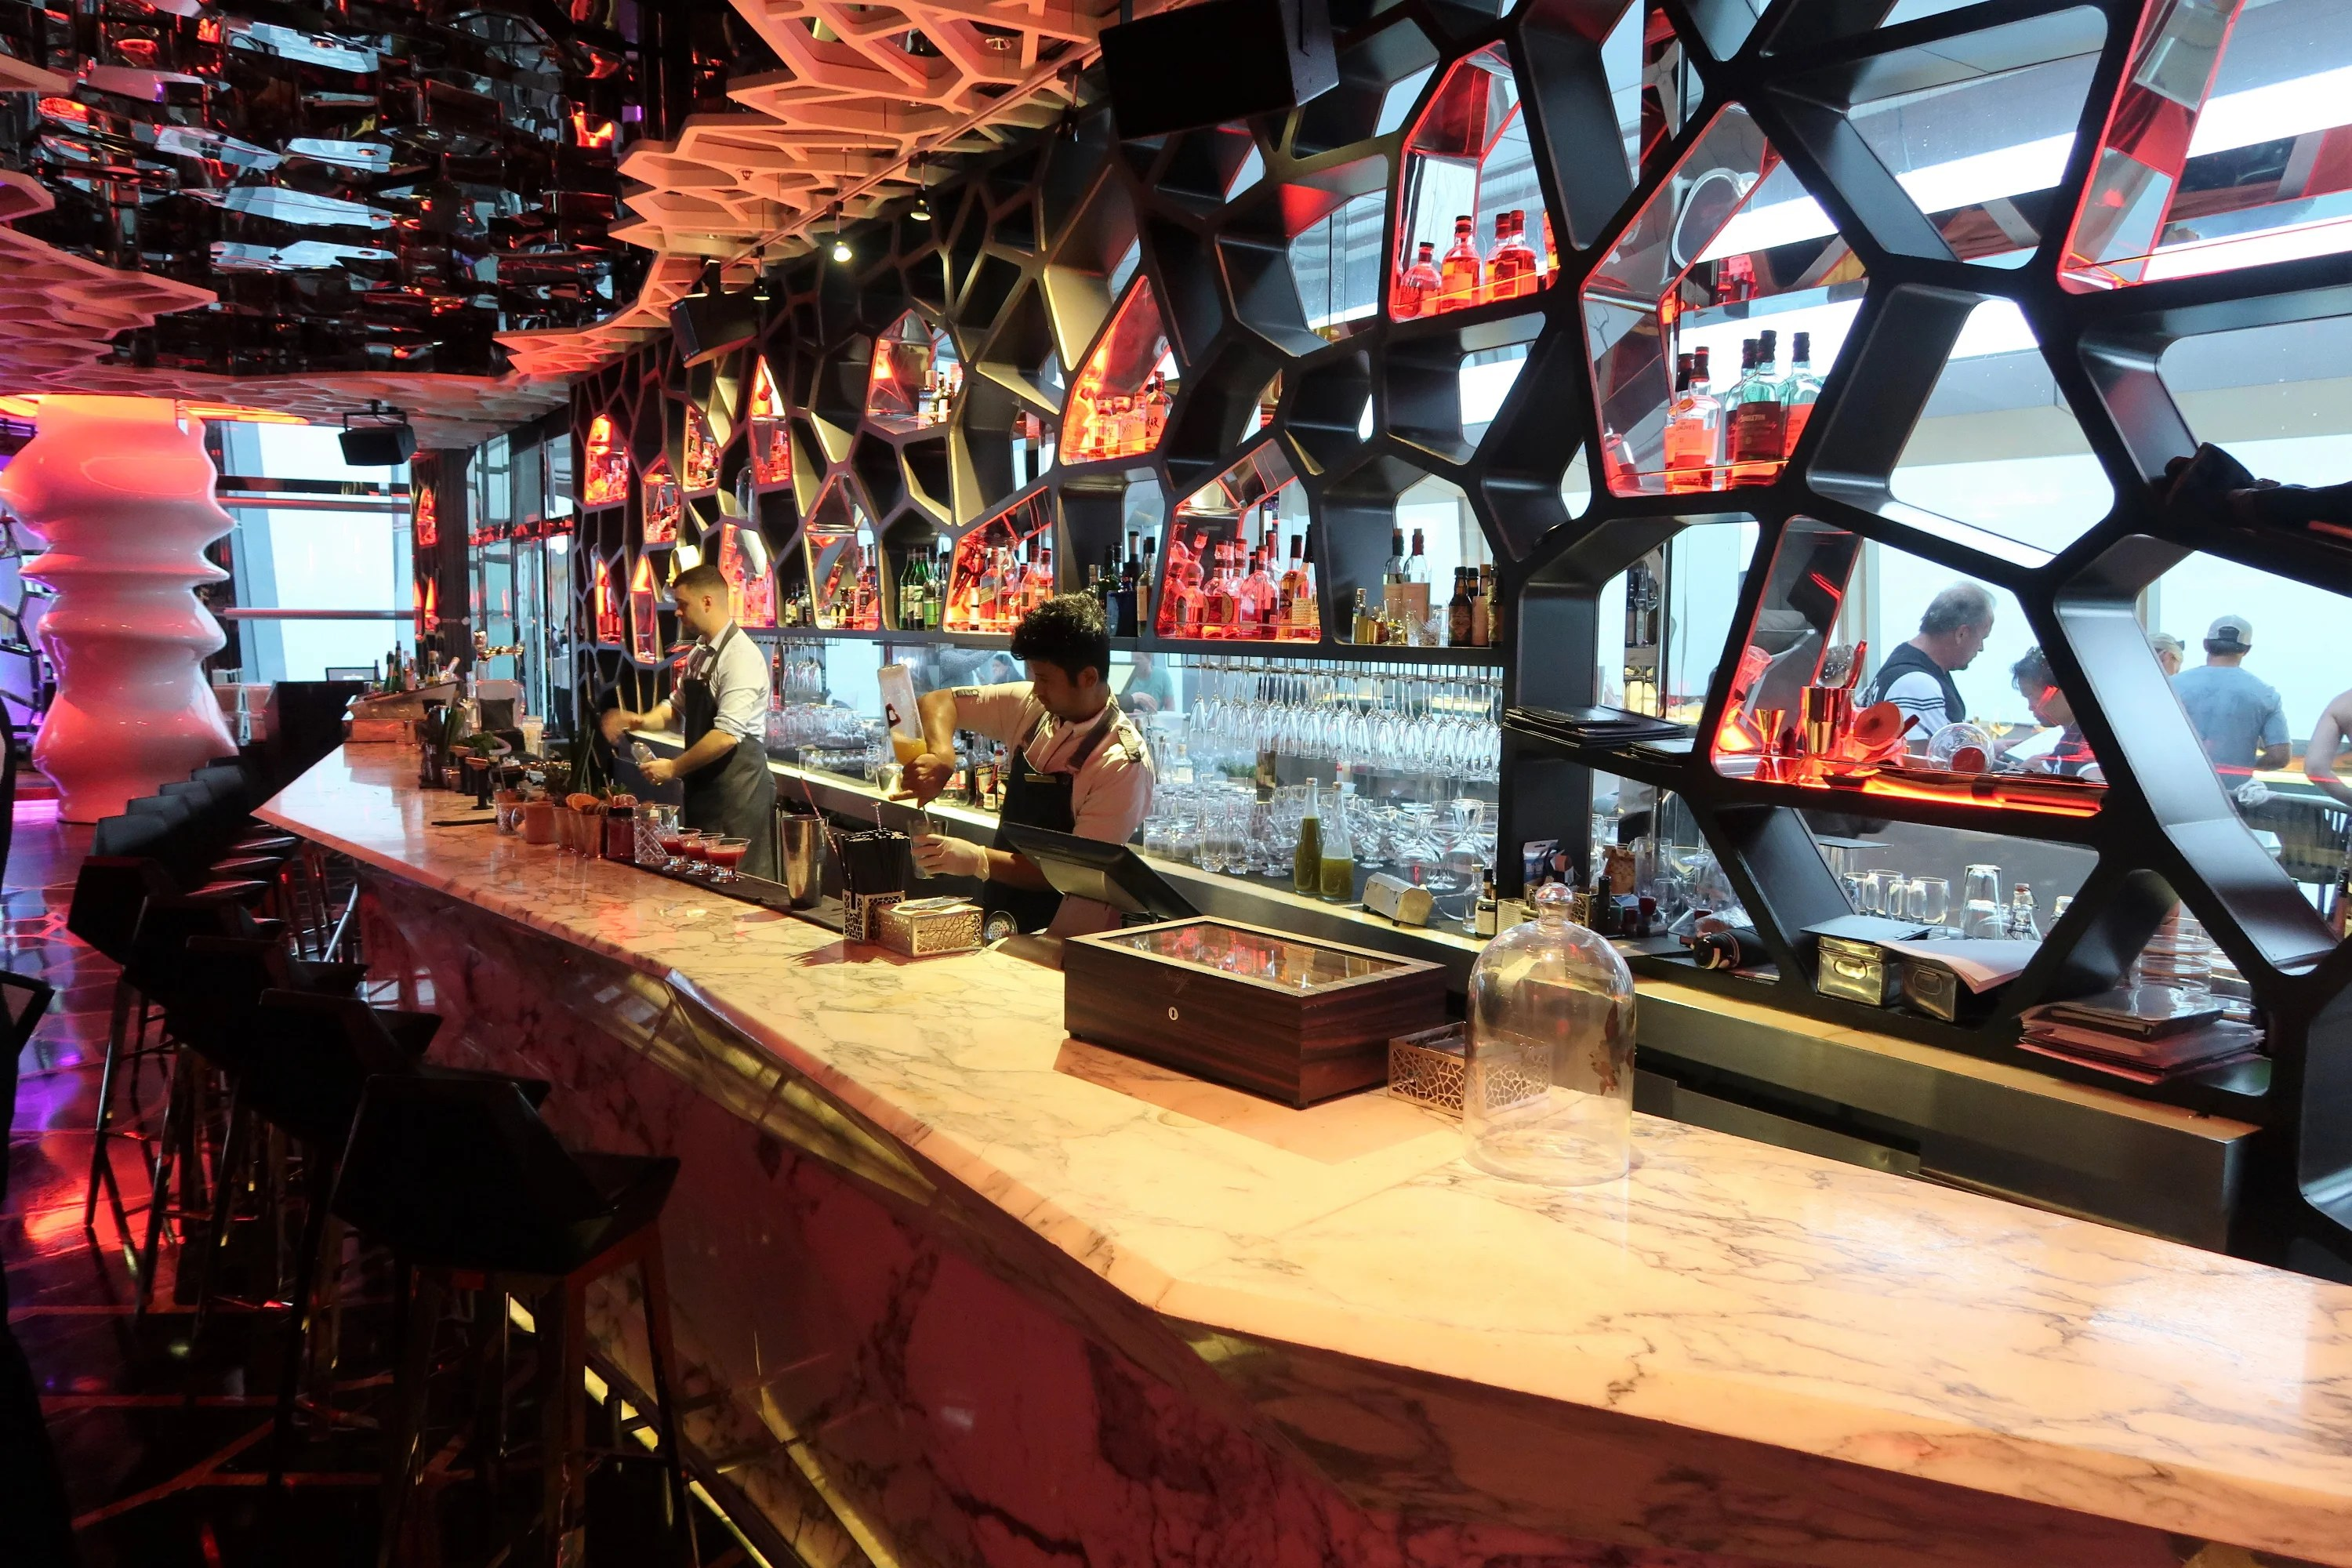 How to Have a Drink at 1,588 Feet in the Highest Hotel Bar on Earth